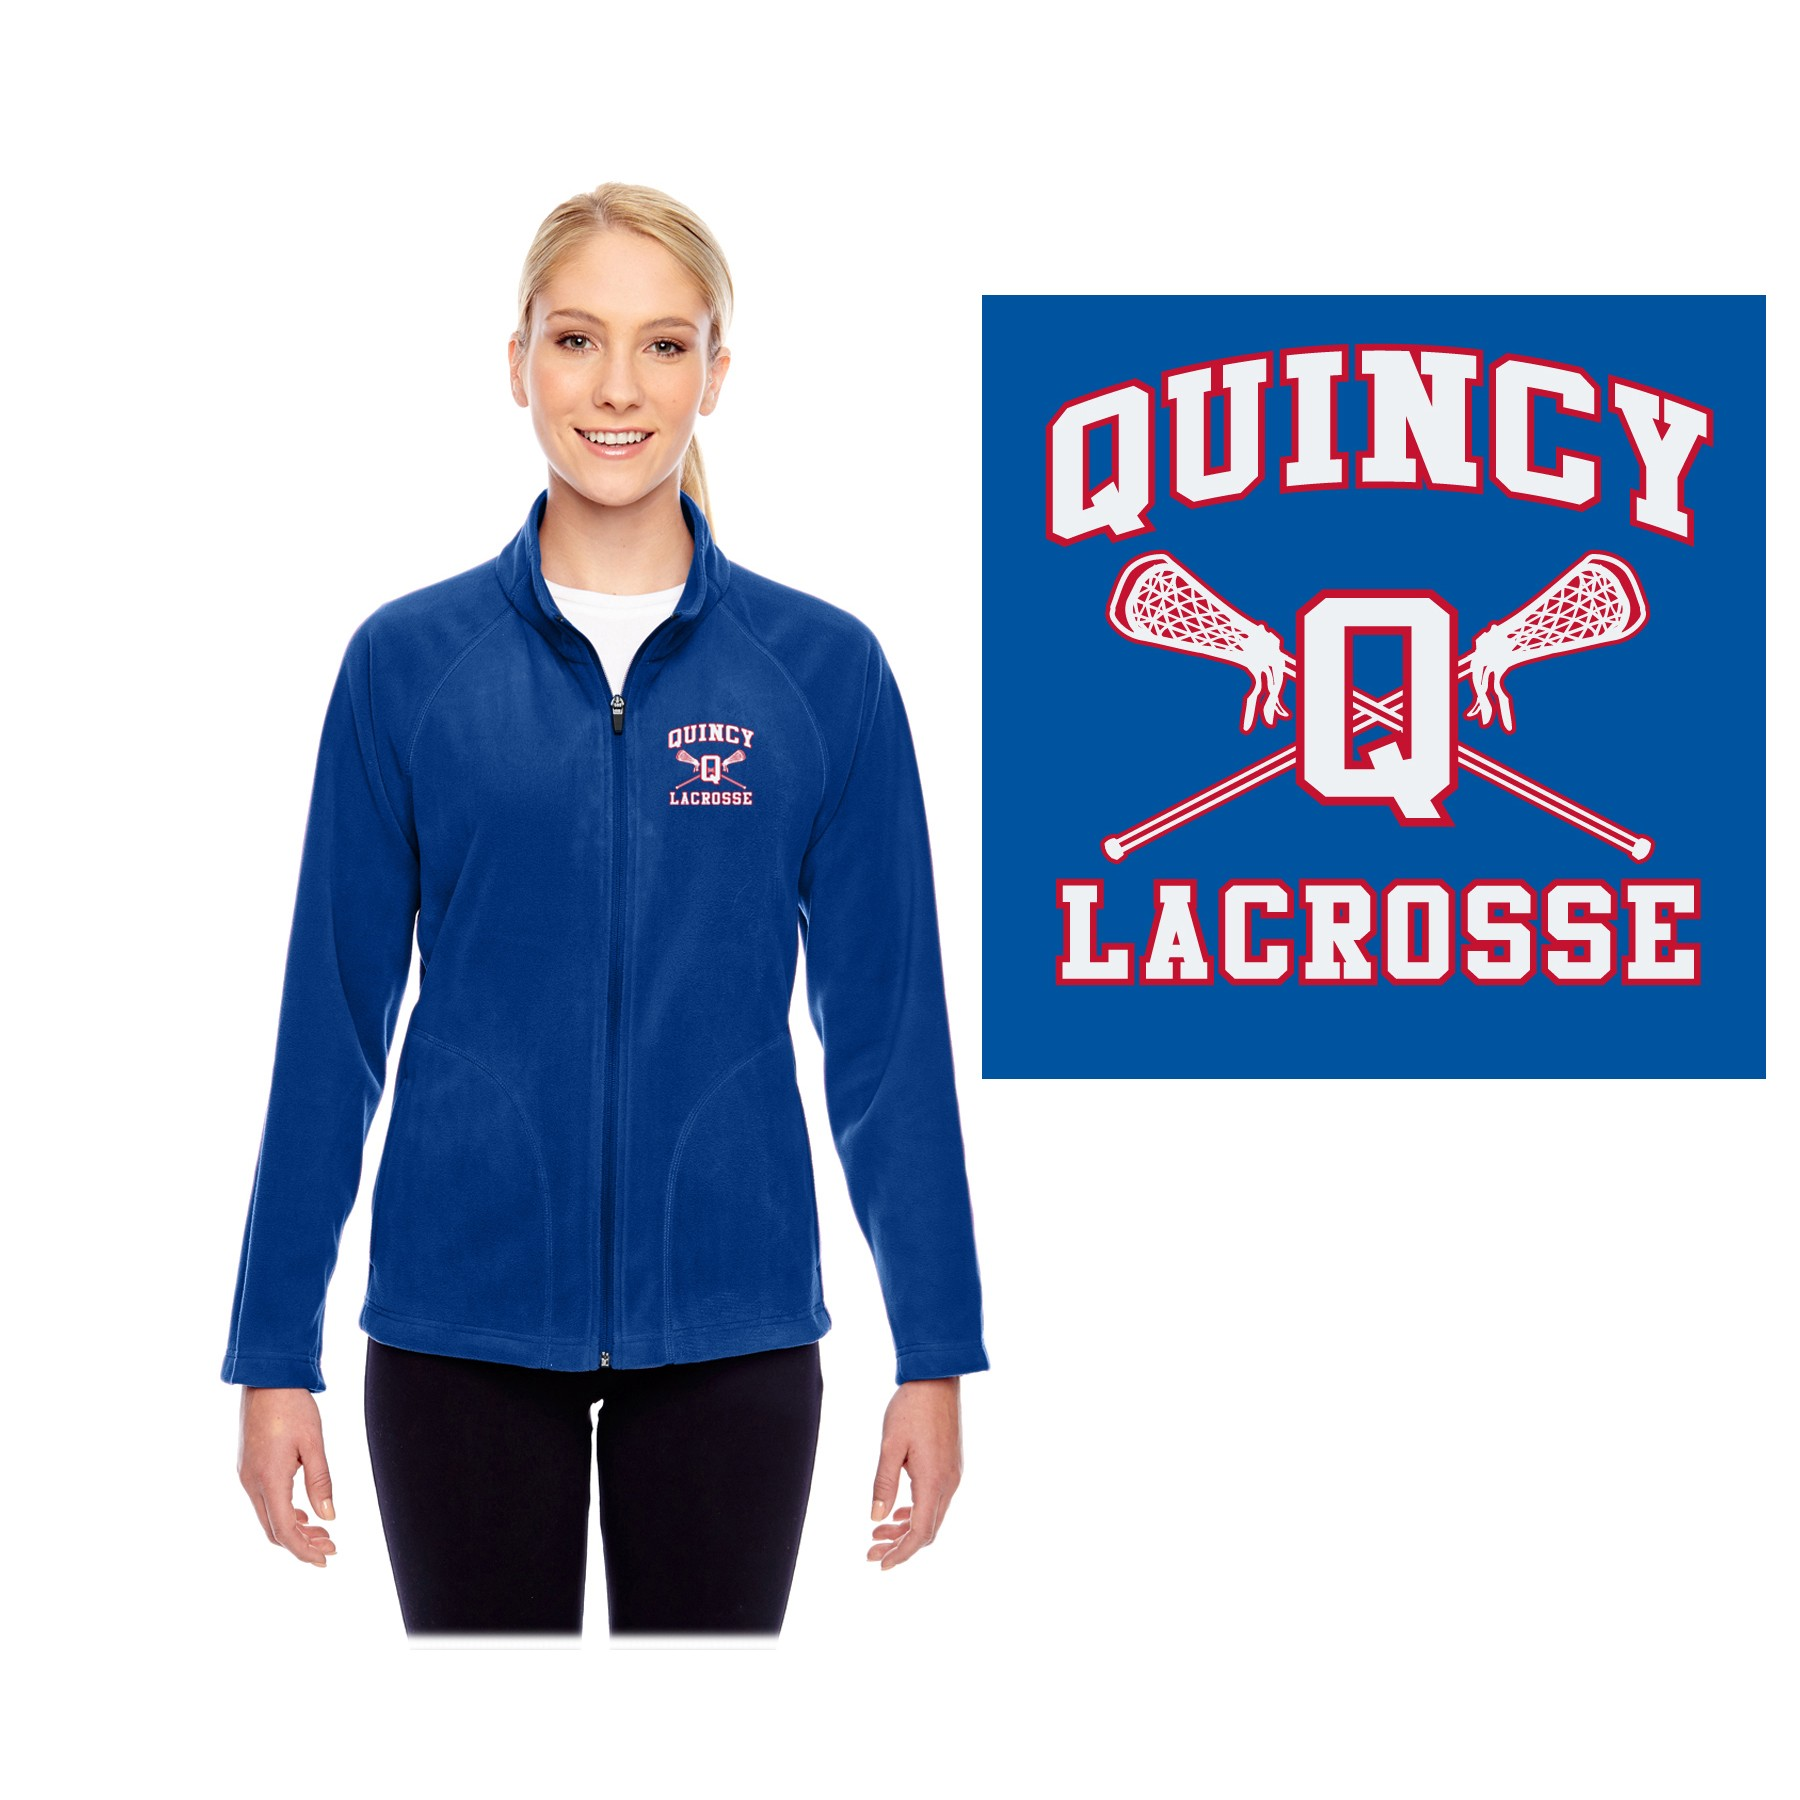 Quincy Lacrosse Team 365 Ladies' Campus Microfleece Jacket TT90W